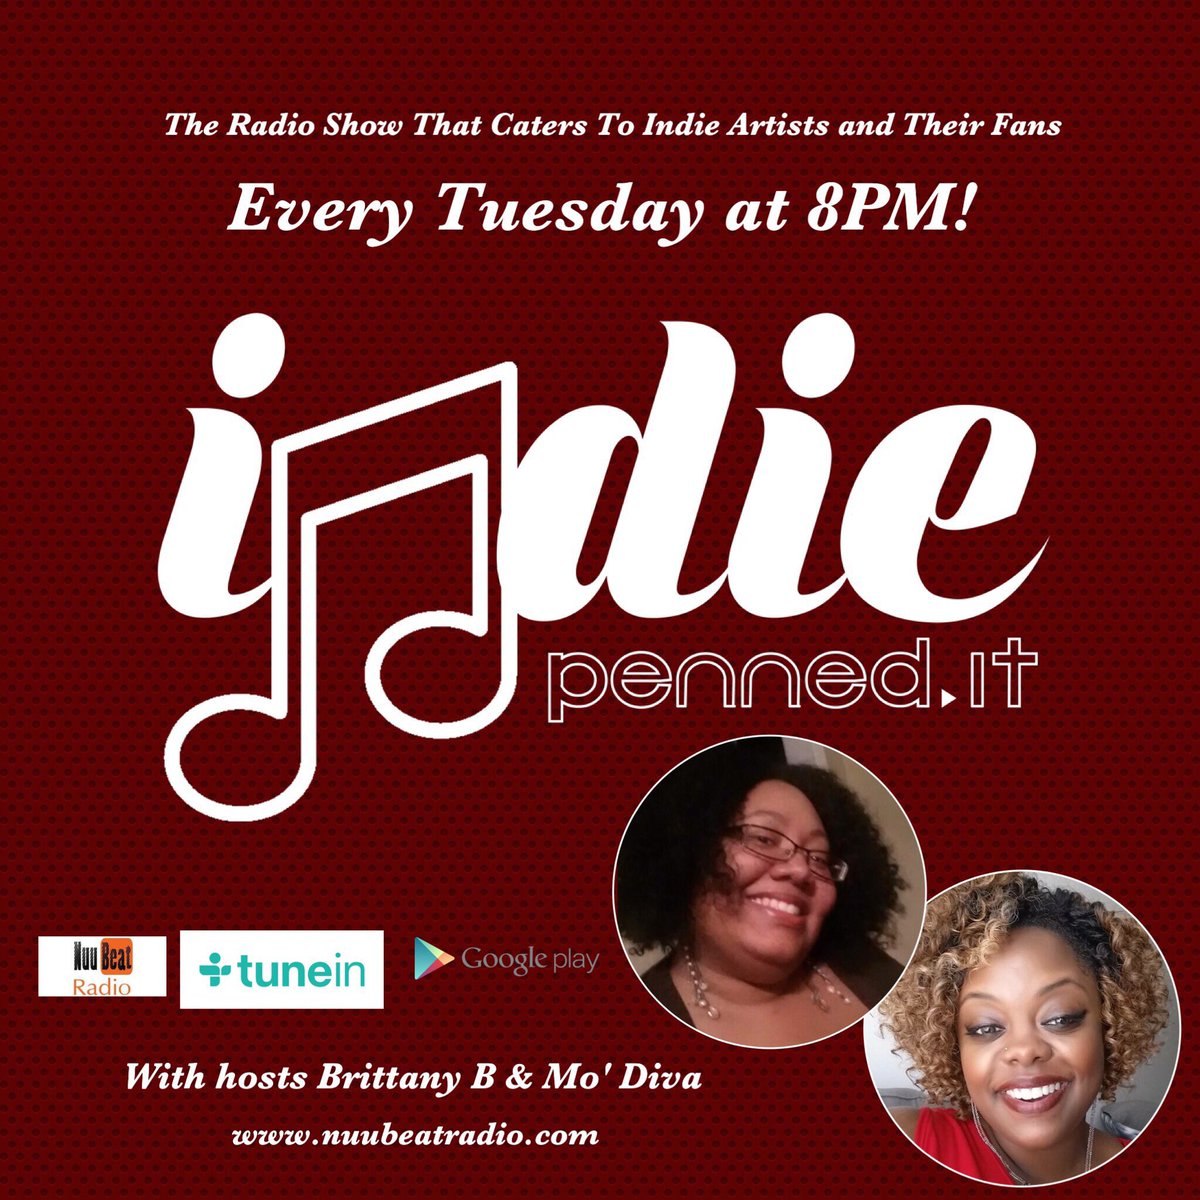 RT @indiepennedit: Just 1 hour away! #music #hiphop #rnb #soul #indieartist #indiemusic #poetry #independentartist #indymusic #clevelandmusic #chicagomusic #indianapolismusic #calimusic #atlantamusic #musicsubmissions #indiepenneditradioshow #indiepenned…<br>http://pic.twitter.com/zAr9MCtwWY